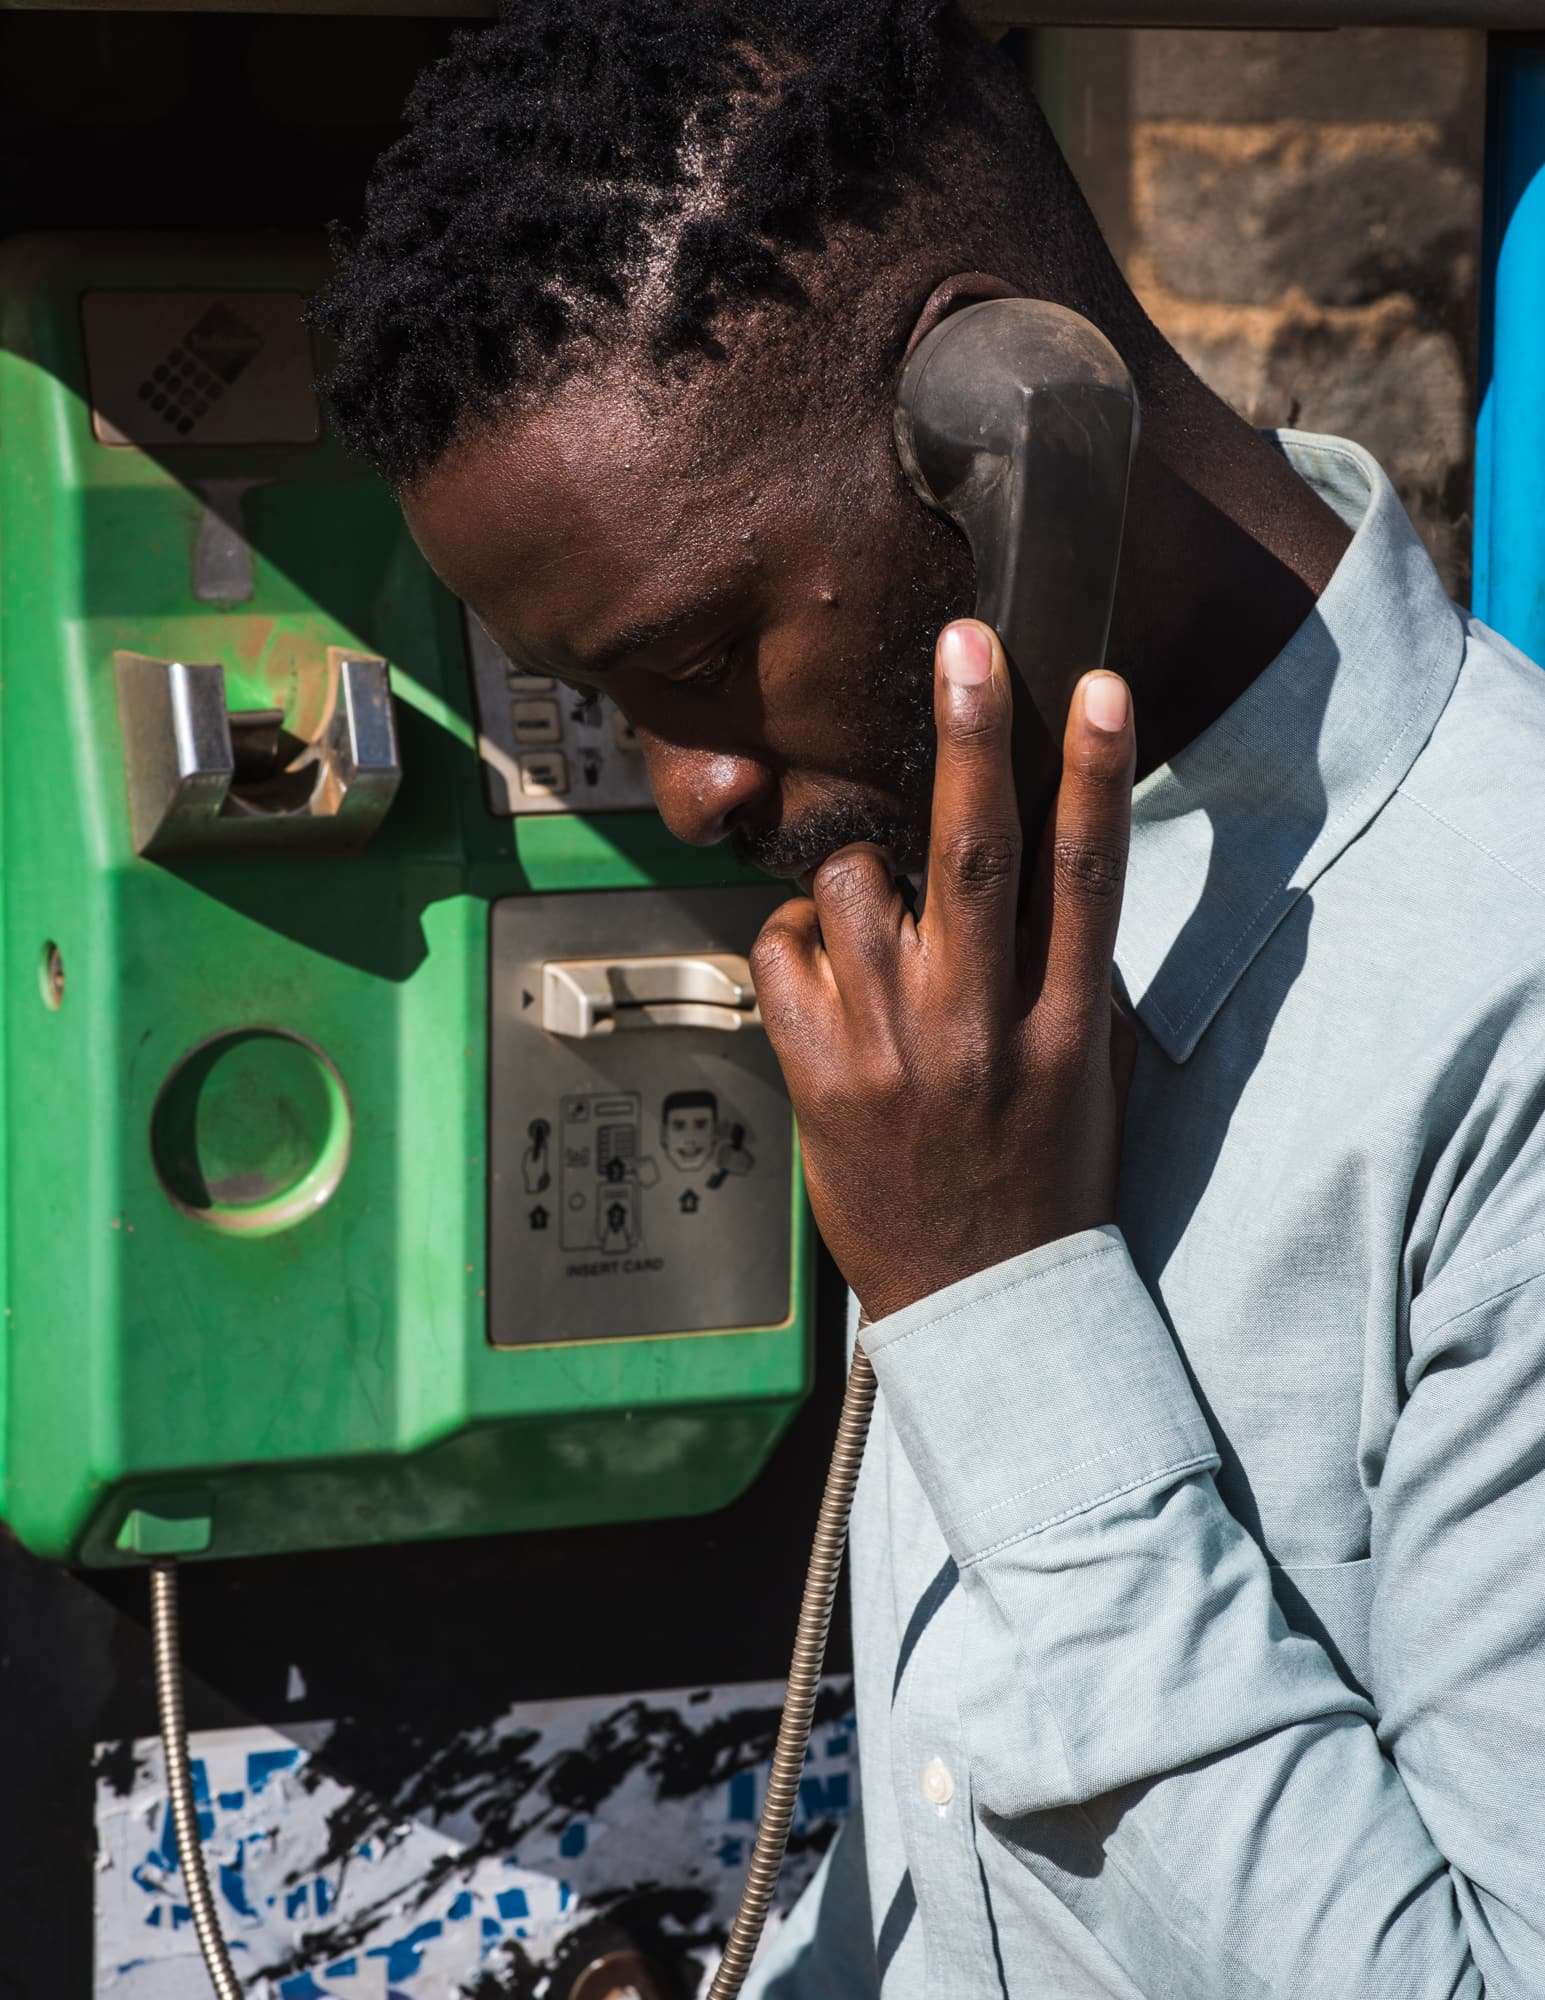 How to get home — Phone box and Handsign to Extension 2